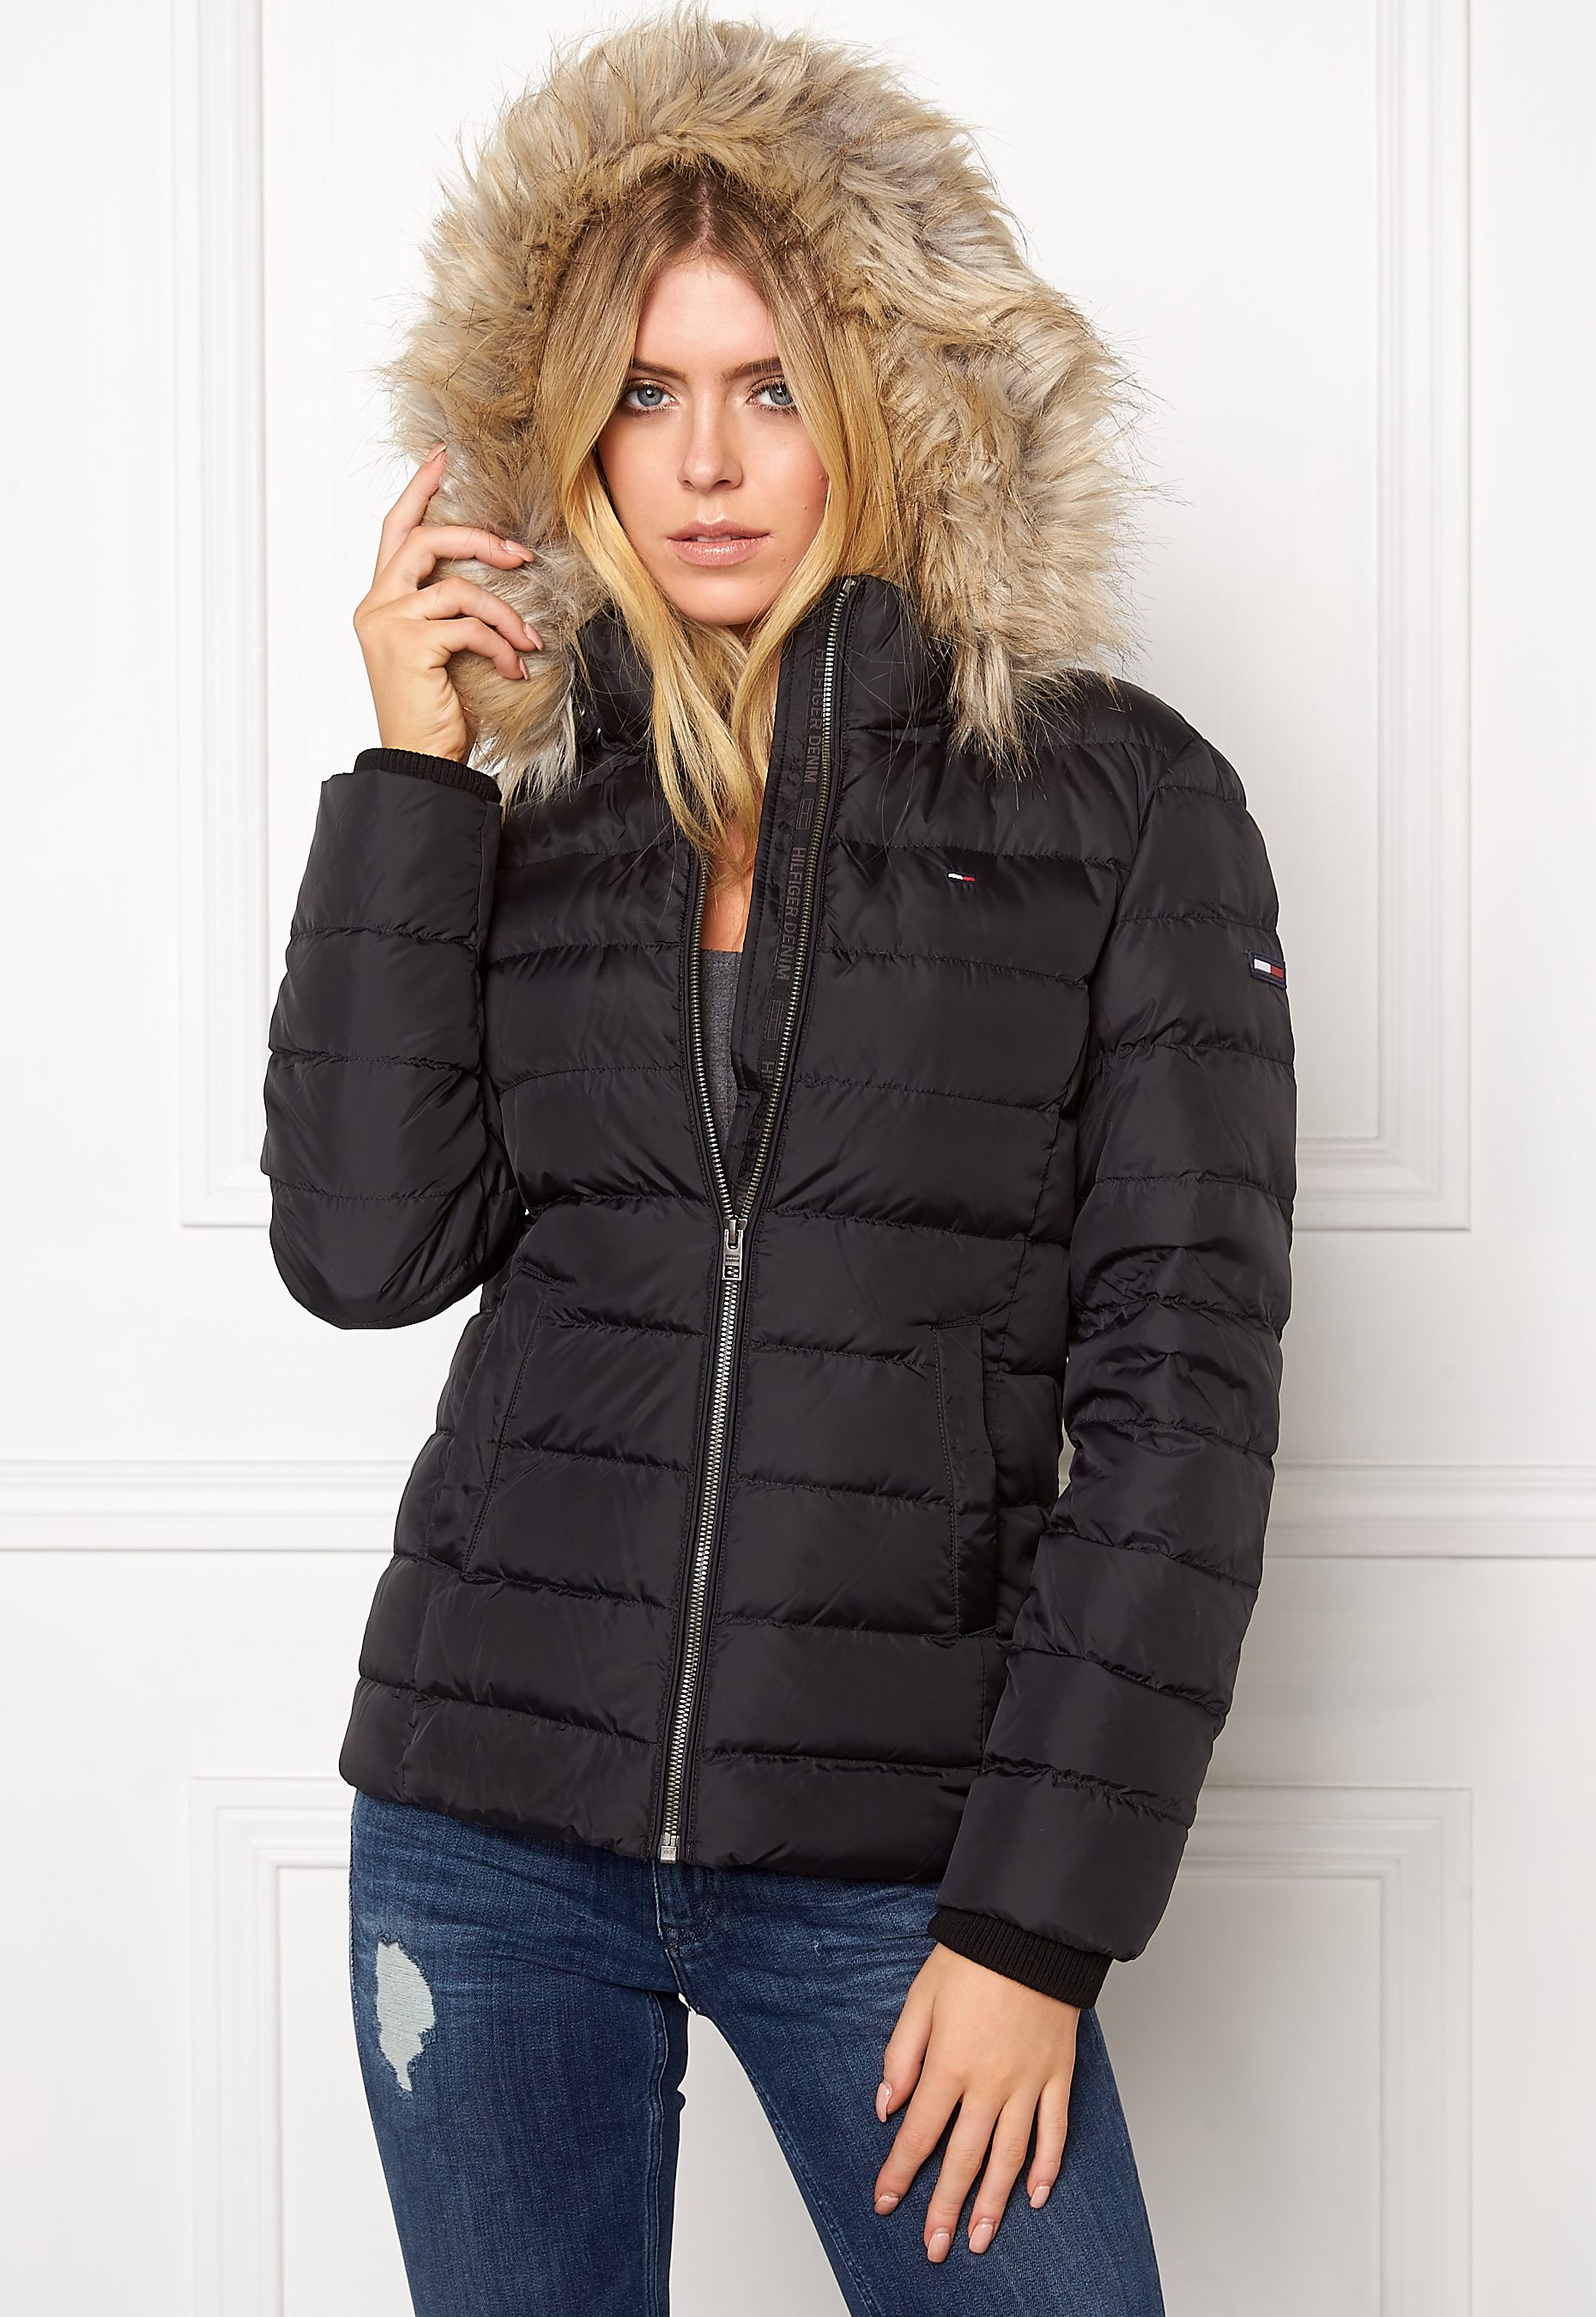 3aae9facdf4 TOMMY JEANS Basic Down Jacket 078 Tommy Black - Bubbleroom